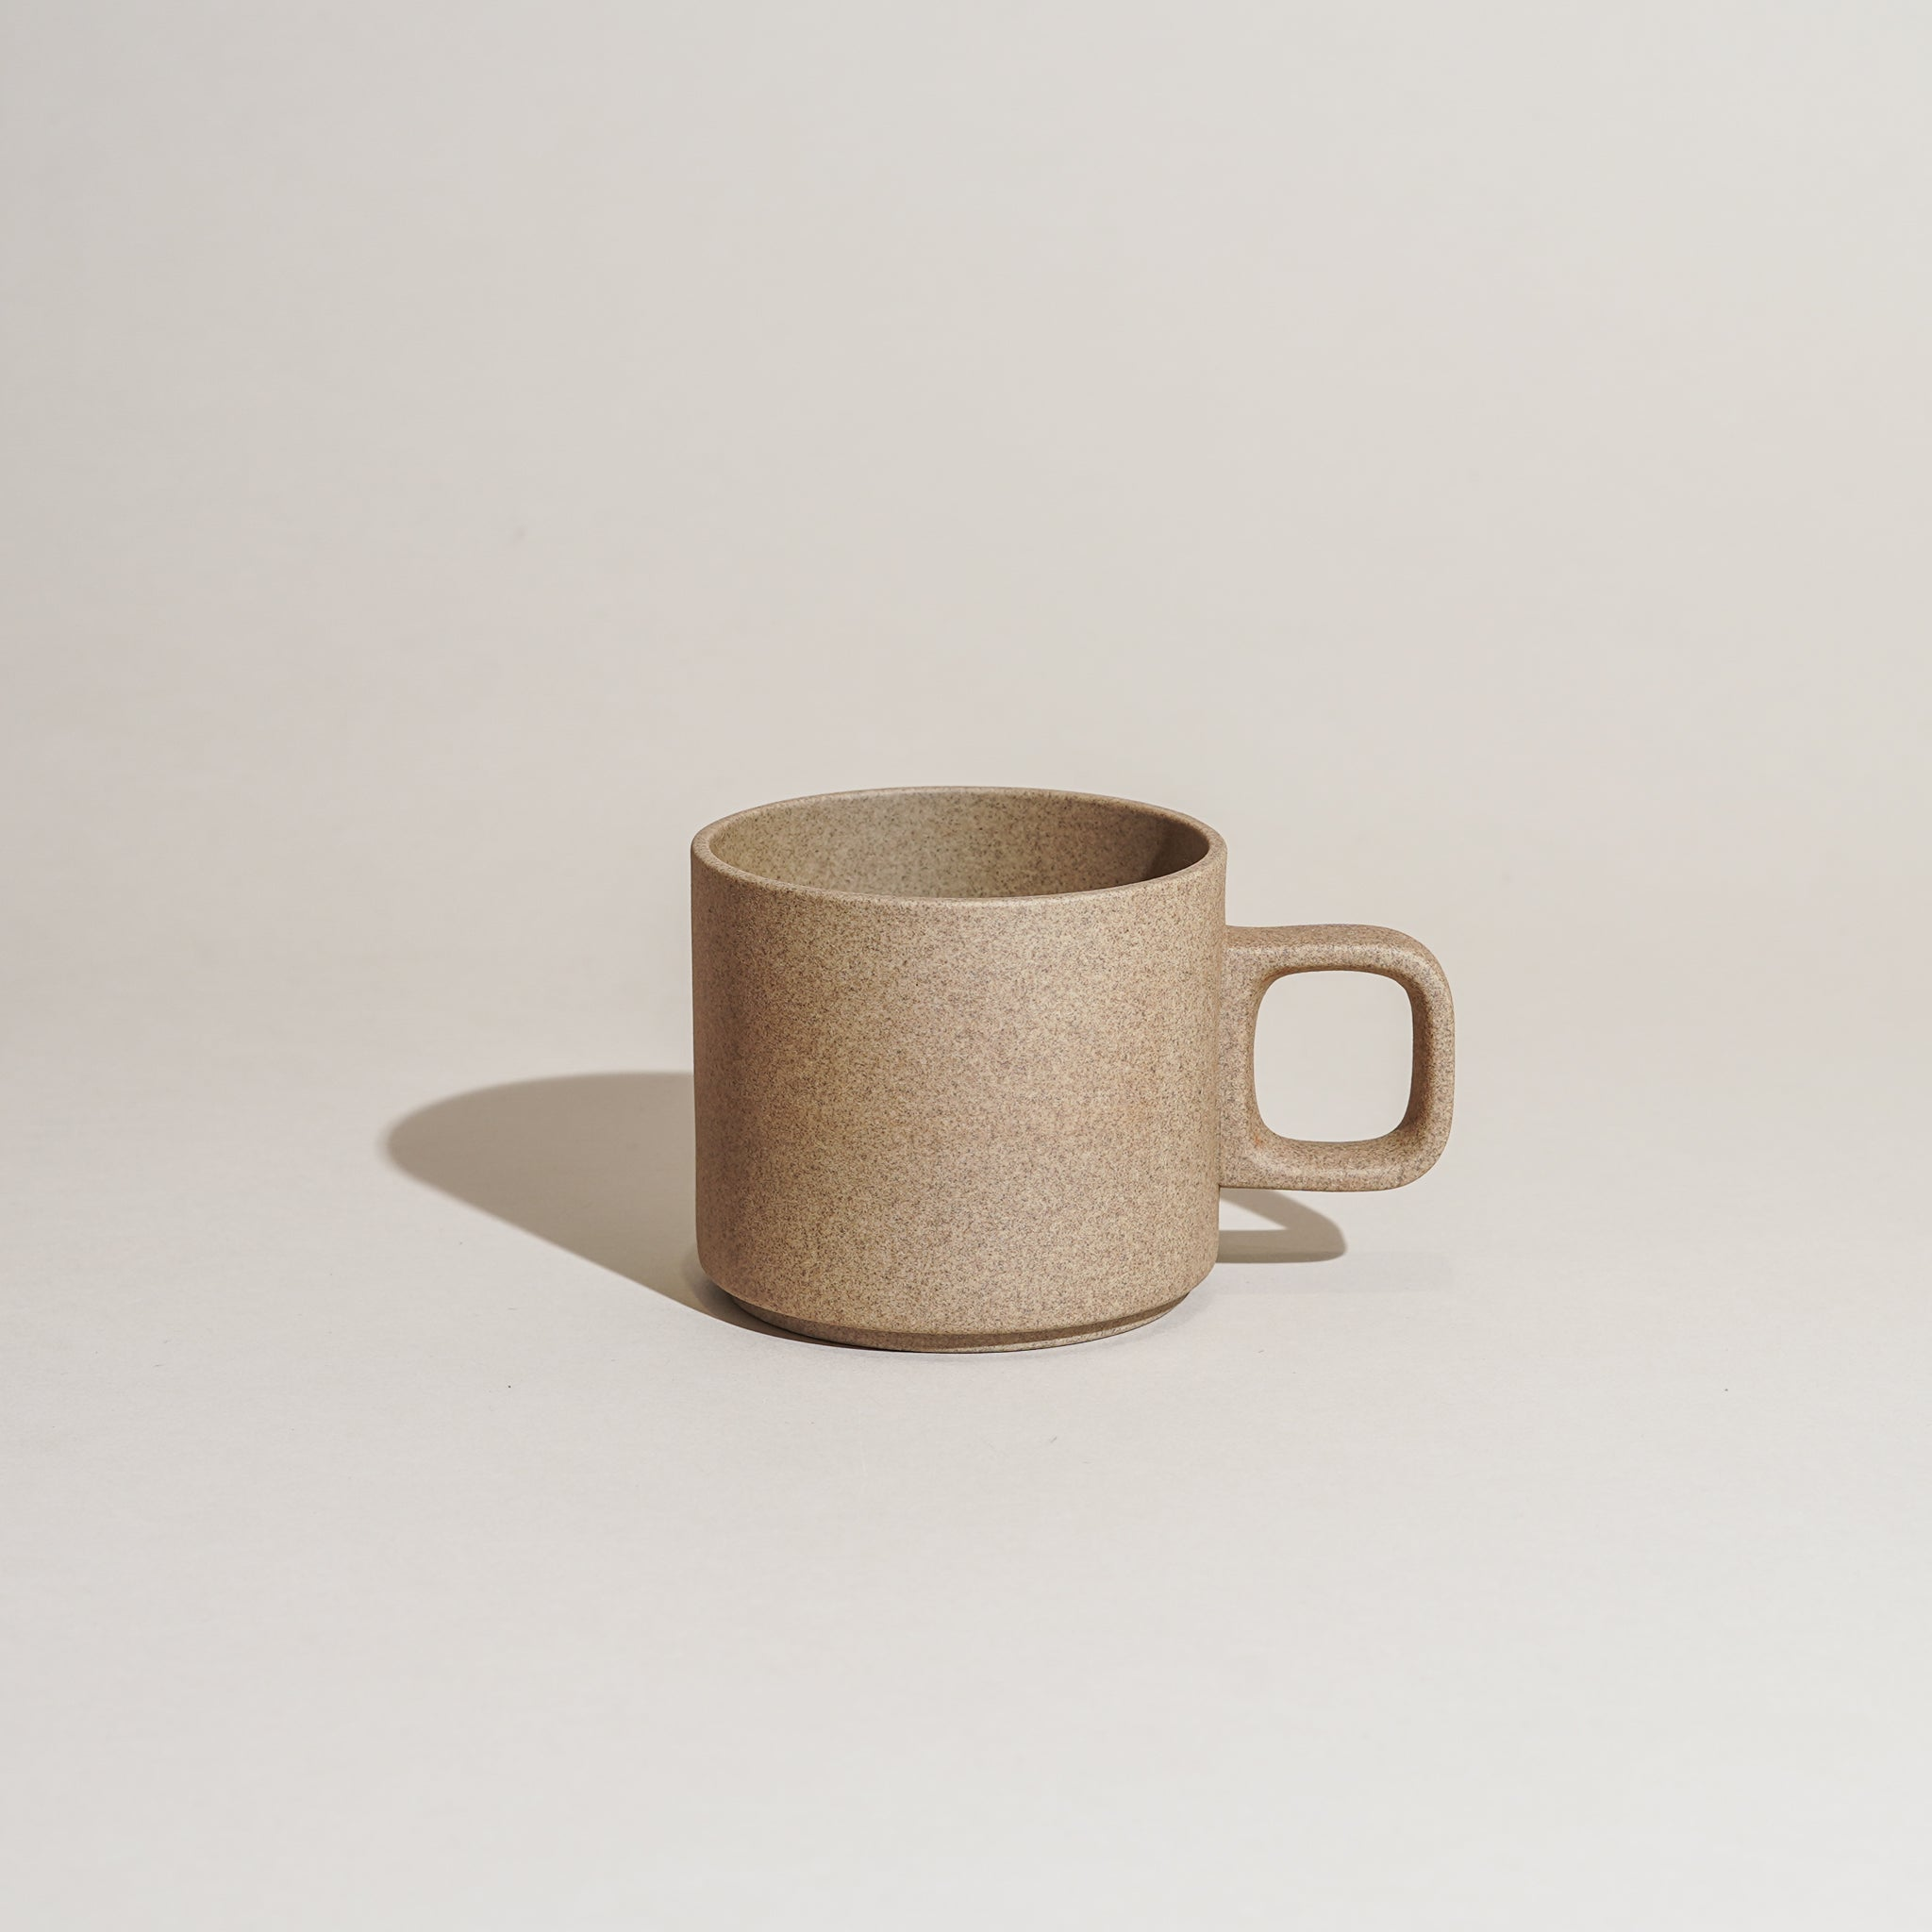 Hasami Porcelain 11oz mug in natural.